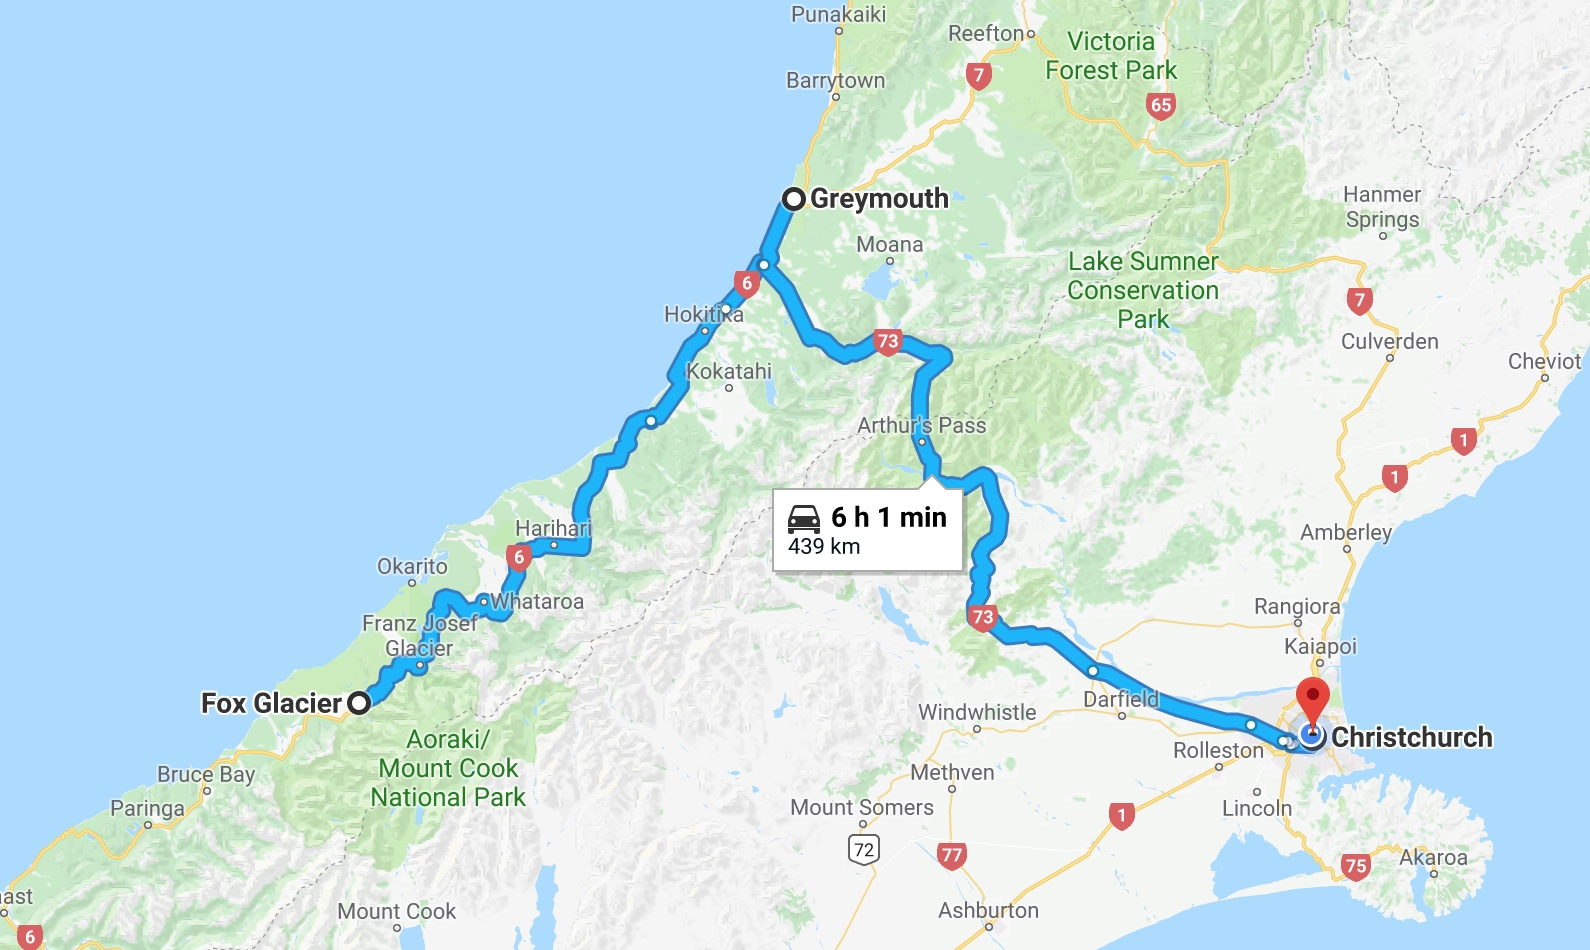 Journey back to Christchurch - At 11 am we pack our things and start making our way back to the East. This is a two day drive with a one night stop at Greymouth.